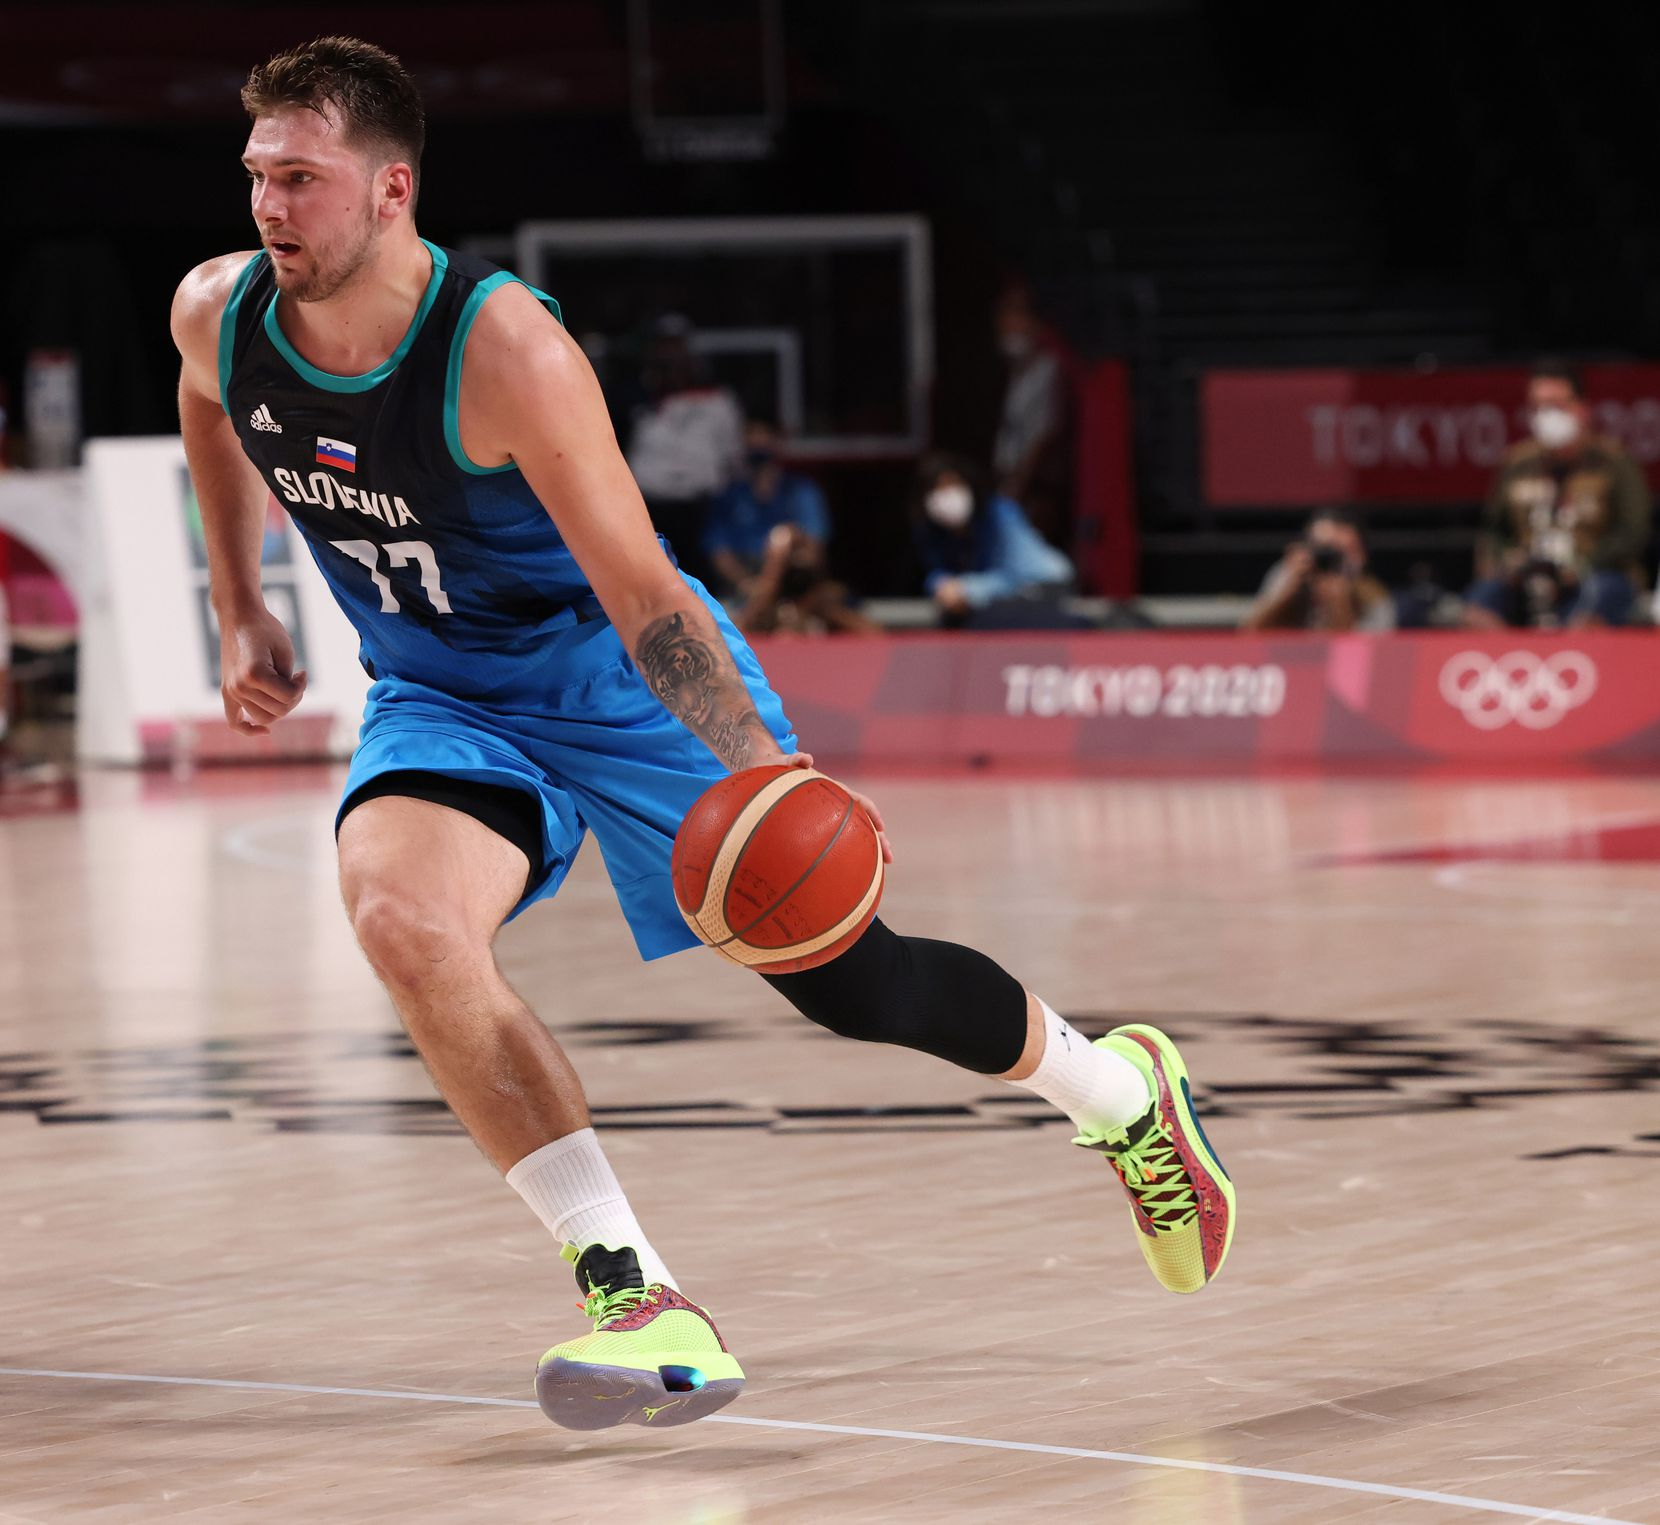 Slovenia's Luka Doncic (77)  drives up the court in the first half of play against Argentina during the postponed 2020 Tokyo Olympics at Saitama Super Arena on Monday, July 26, 2021, in Saitama, Japan. Slovenia defeated Argentina 118-100. (Vernon Bryant/The Dallas Morning News)